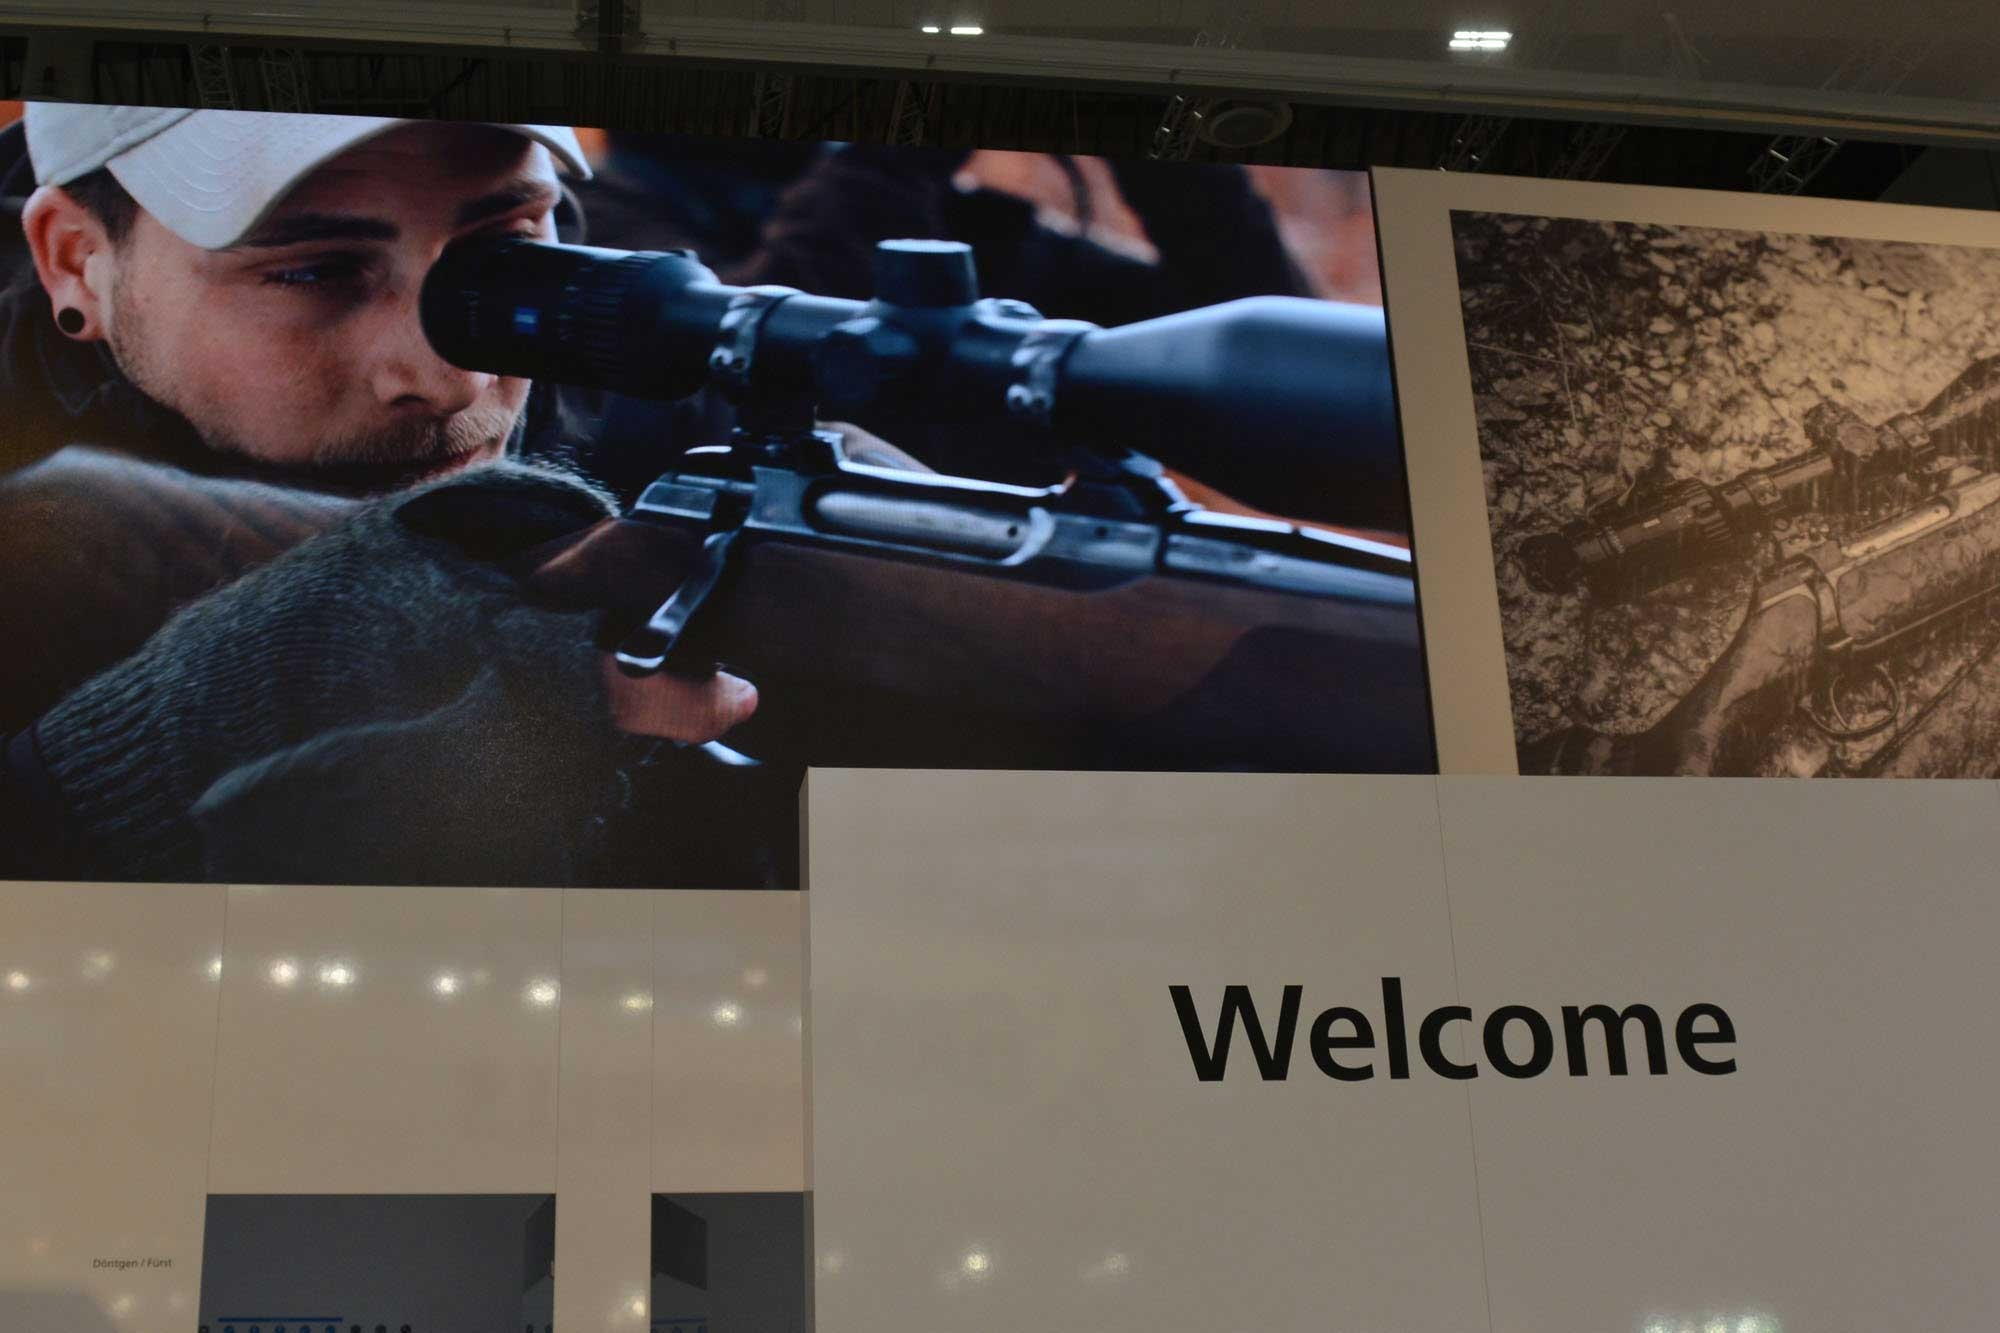 Huge image of a hunter with rifle looking through a ZEISS riflescope.